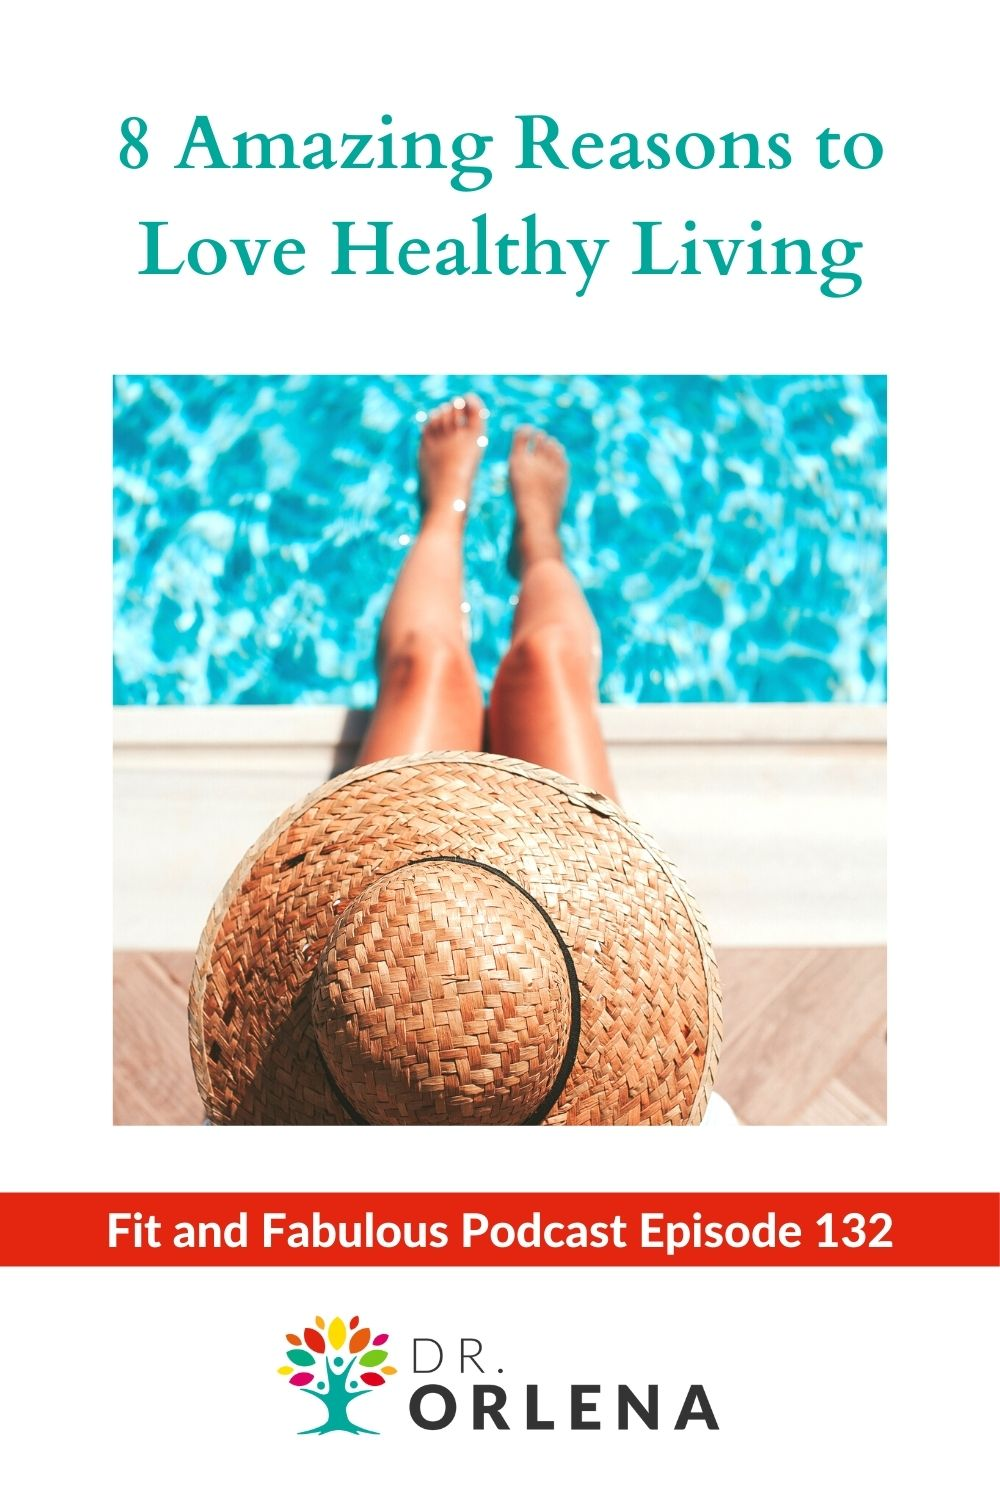 A woman relaxing by the pool #healthyliving #healthylife #wellness